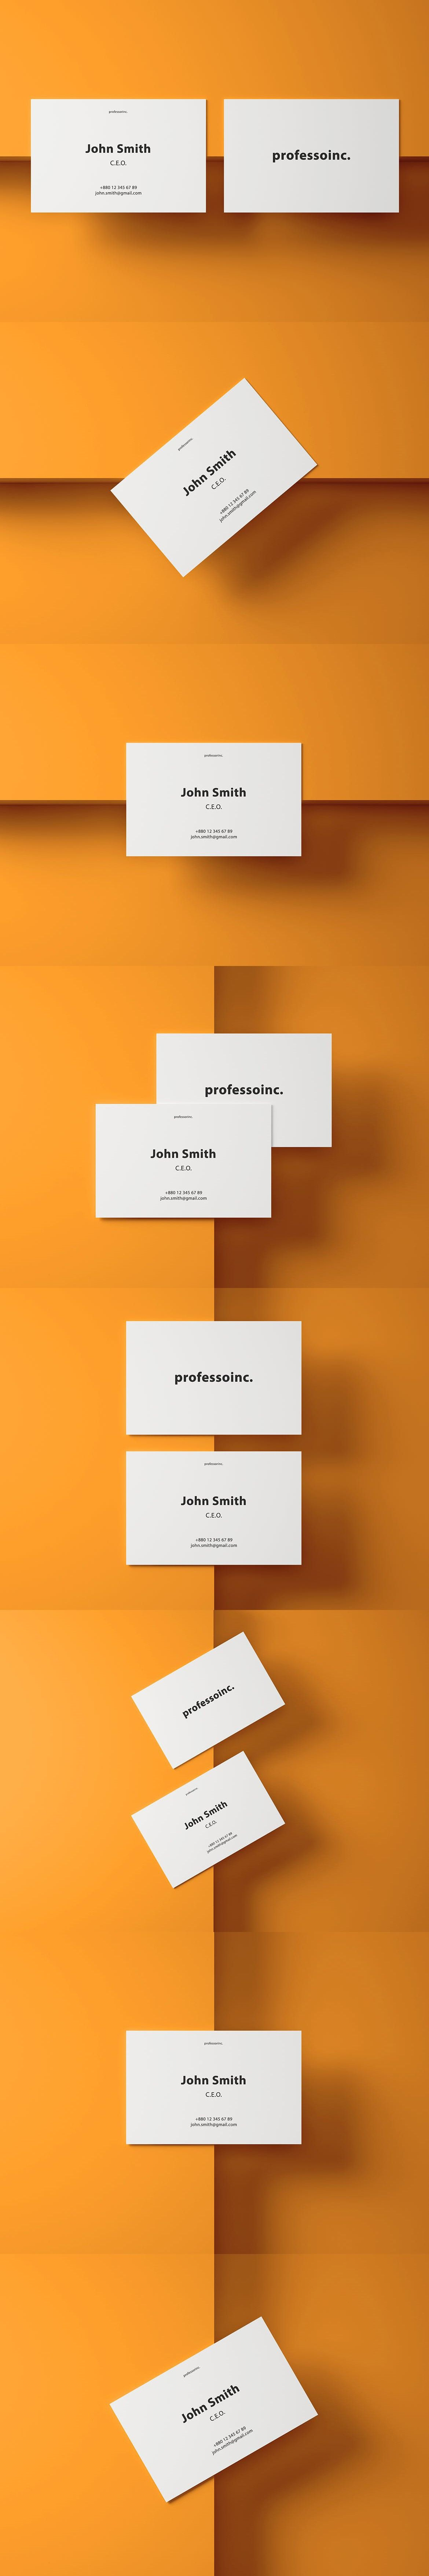 85x55 Business Card Mockup Set 2 By Professorinc On Envato Elements Business Card Mock Up Cards Envato